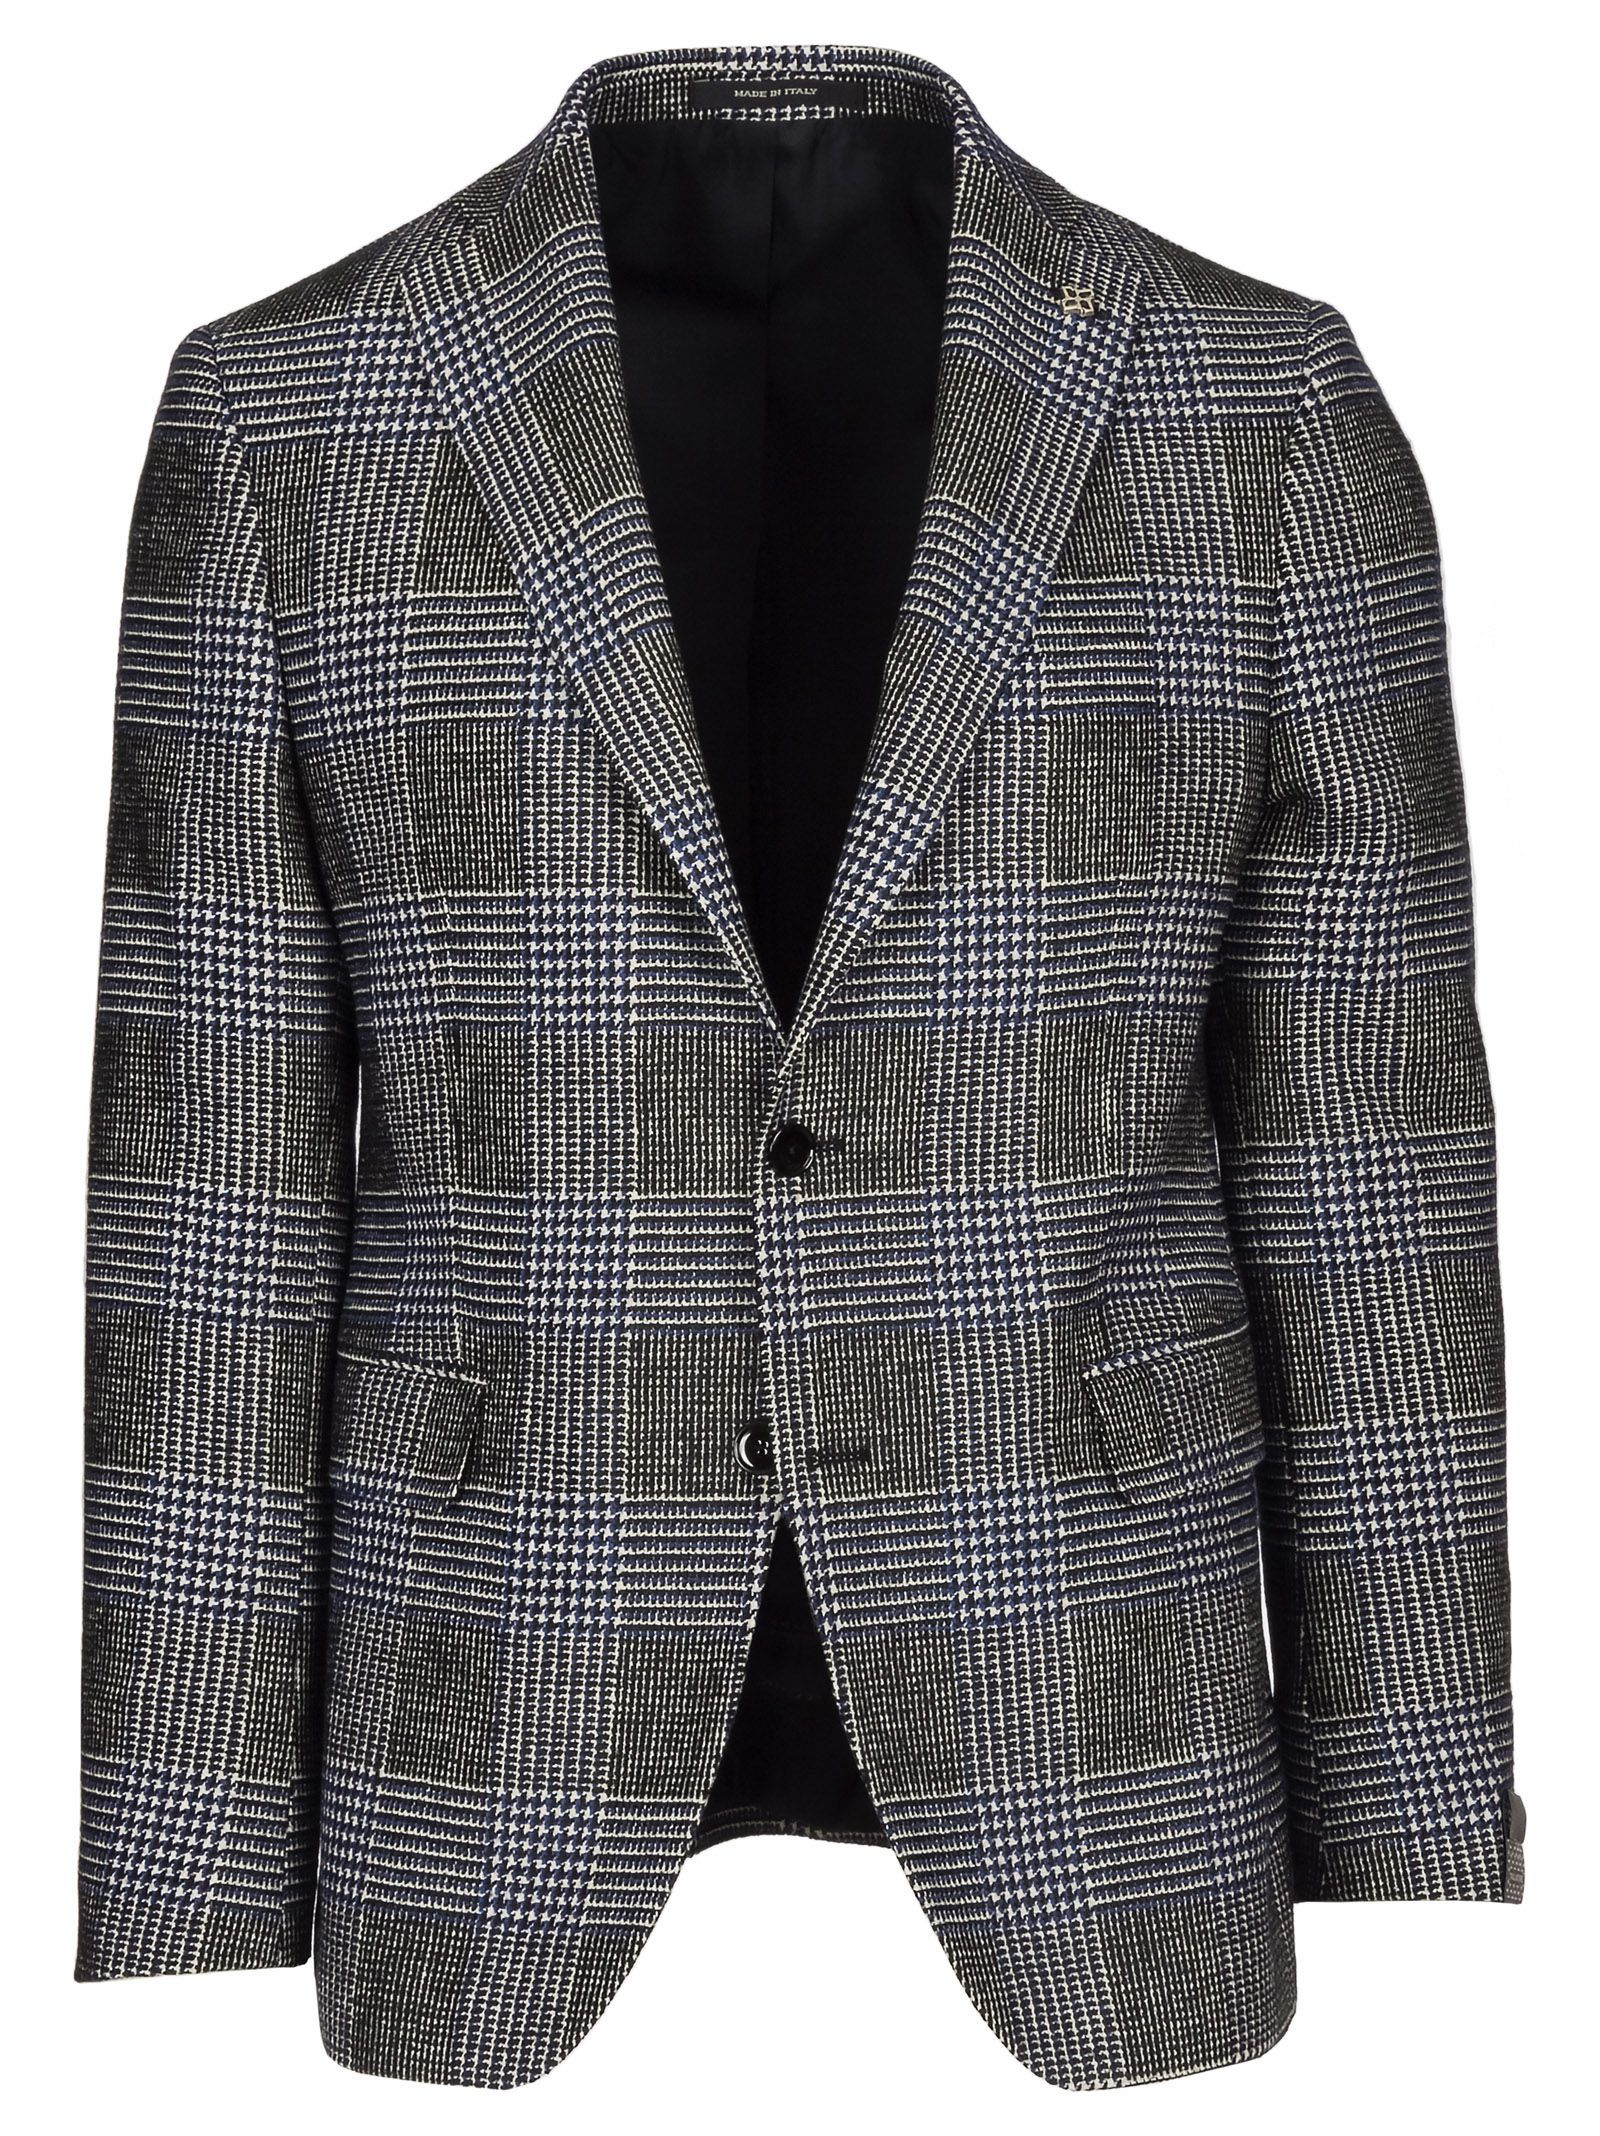 Tagliatore Cotton And Wool Jacket